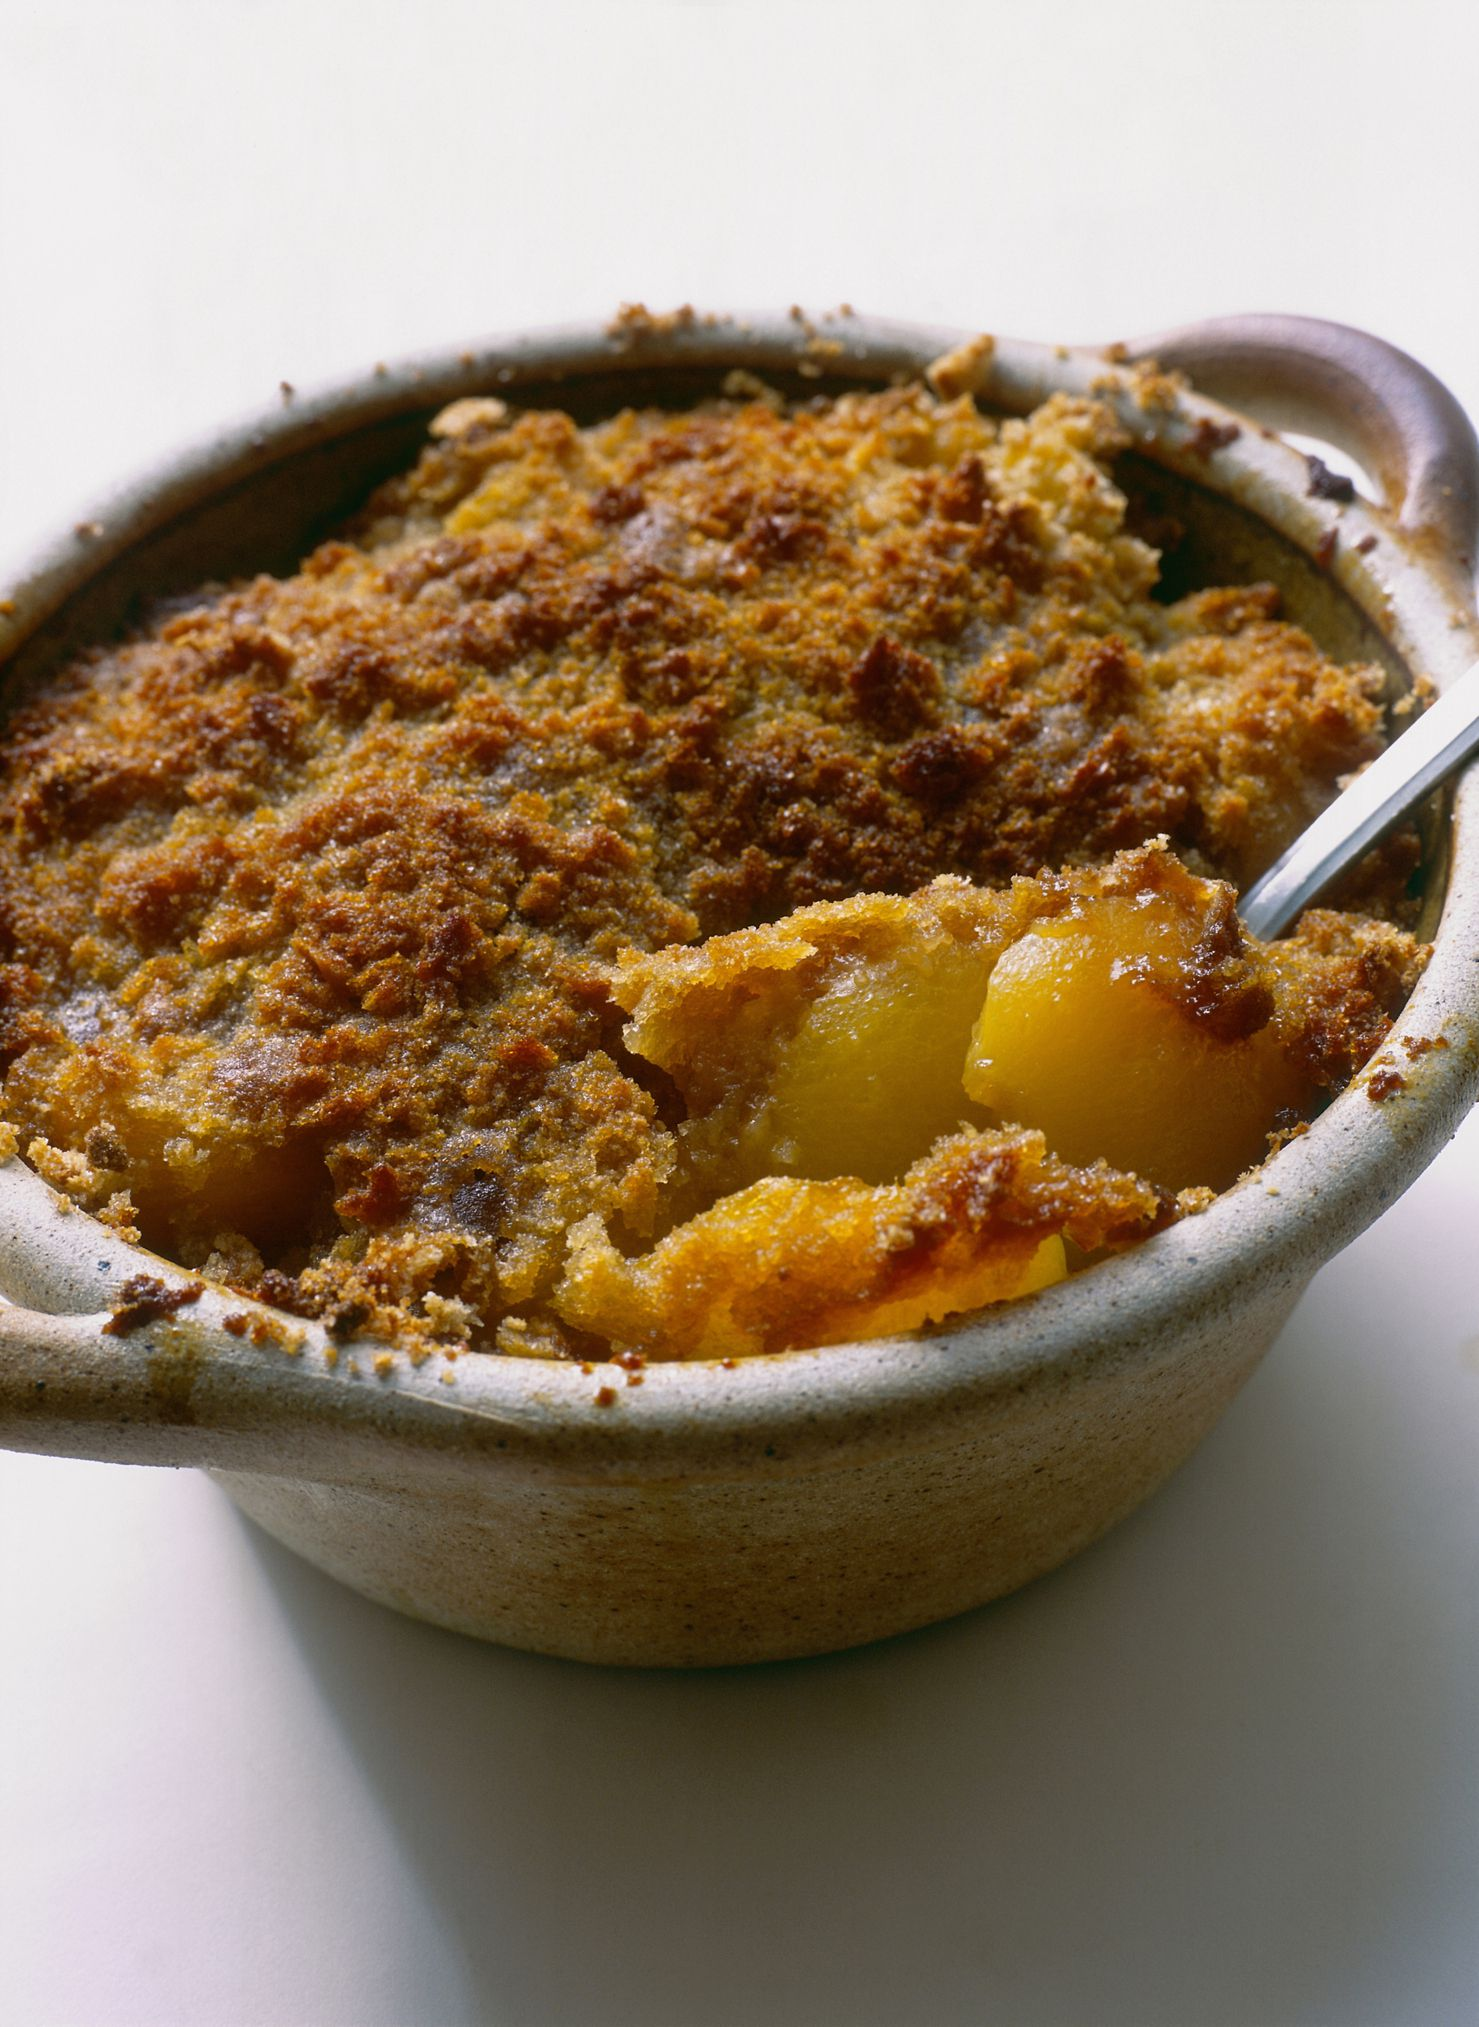 green apple kitchen decor pull out shelves for cabinets vegan cobbler with cloves and allspice recipe